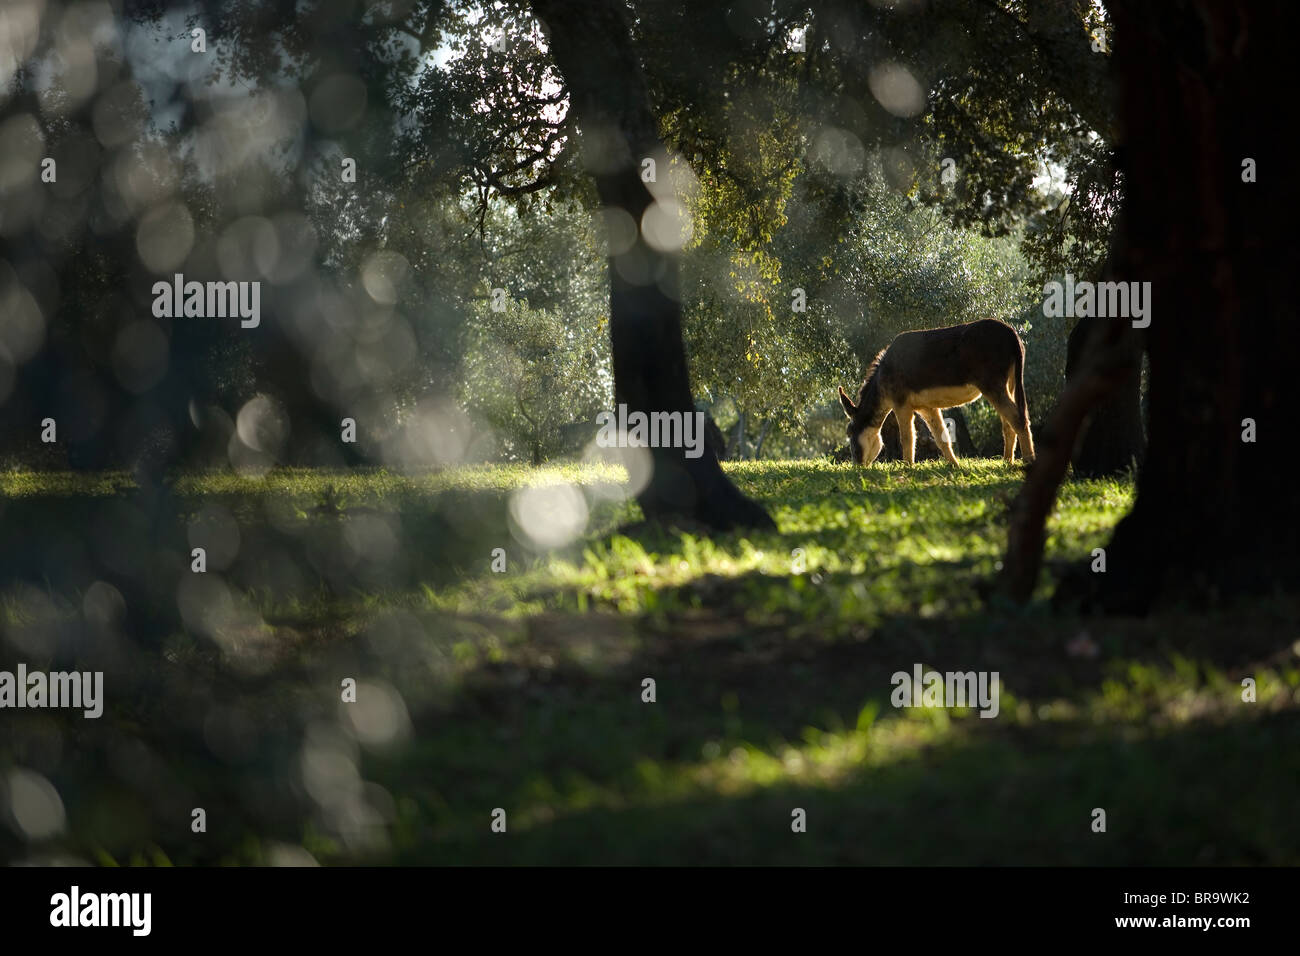 A donkey grazes in an olive grove - Stock Image